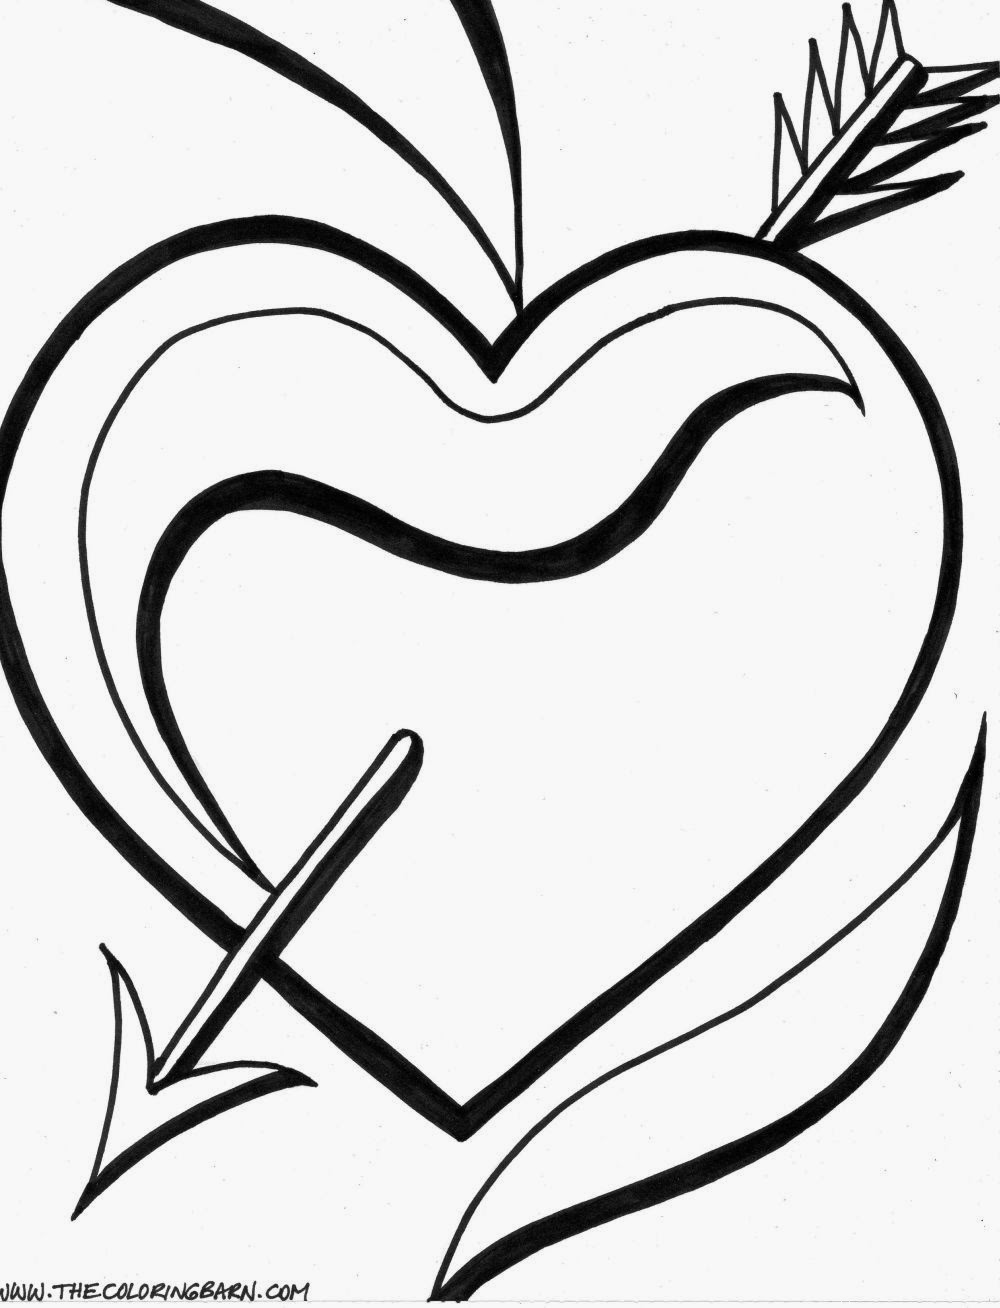 coloring pages of hearts printable coloring pages hearts 2 valentine printable coloring pages - Coloring Pages Hearts Roses